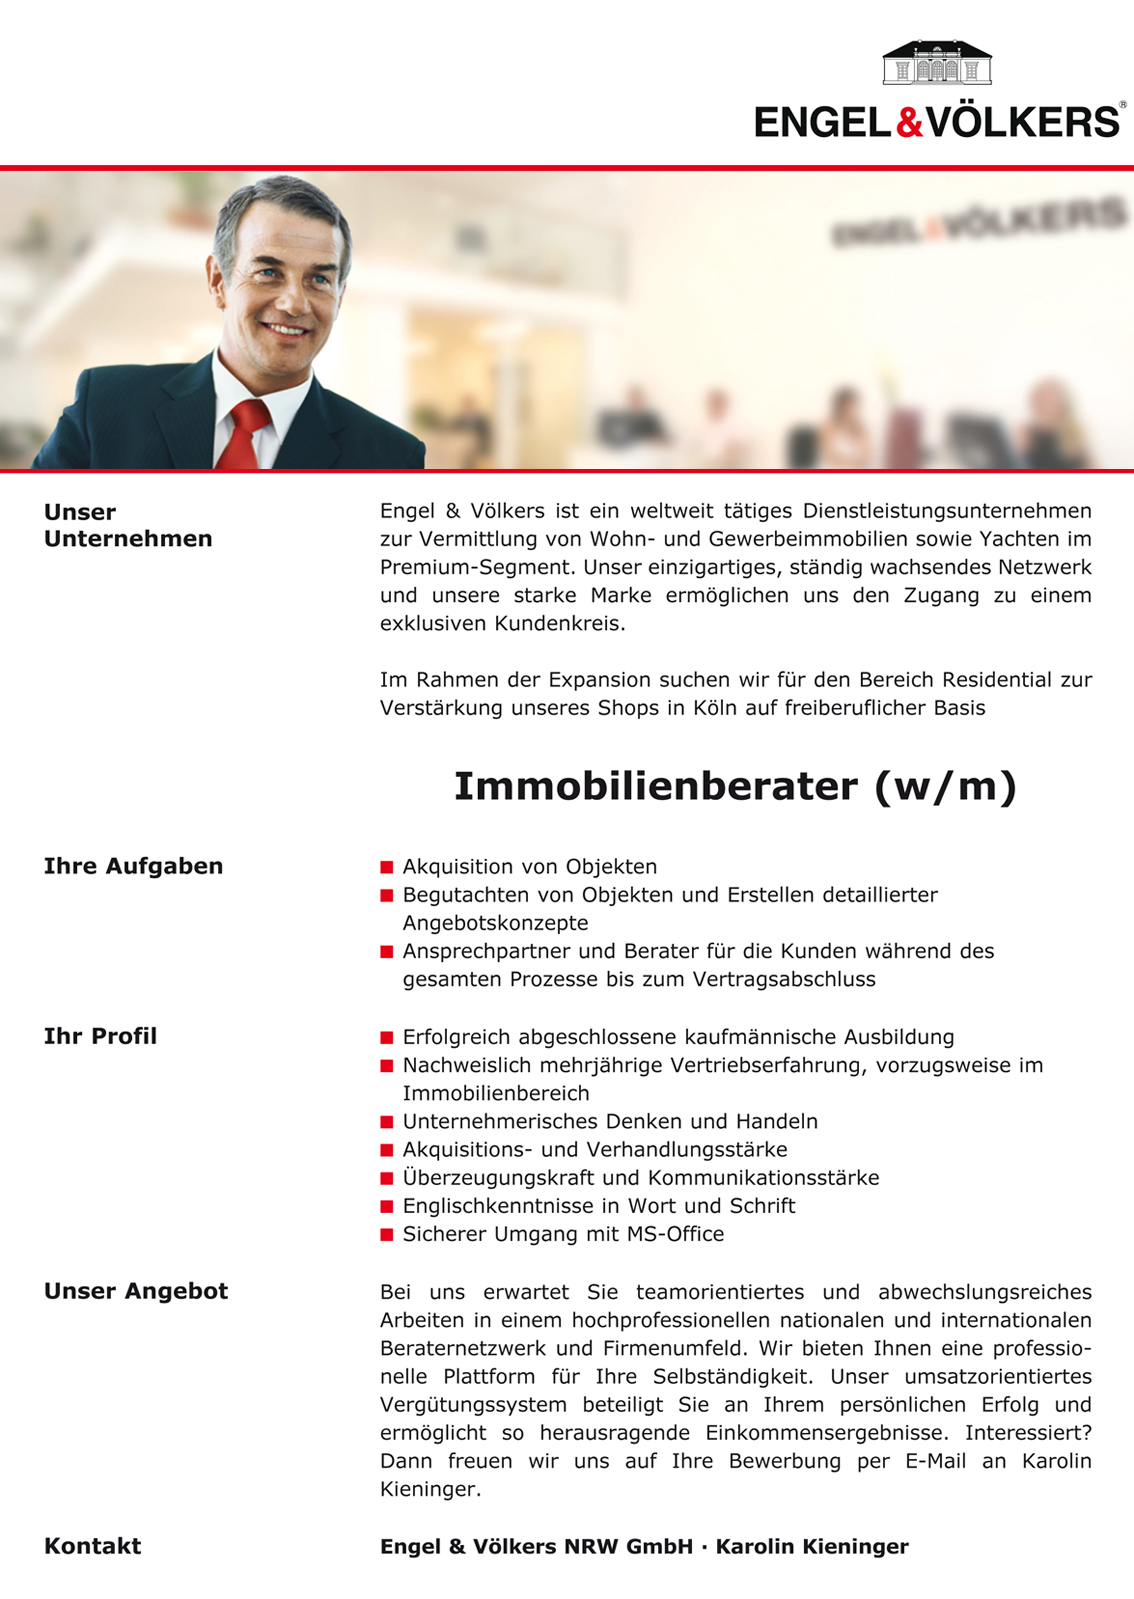 Immobilienberater